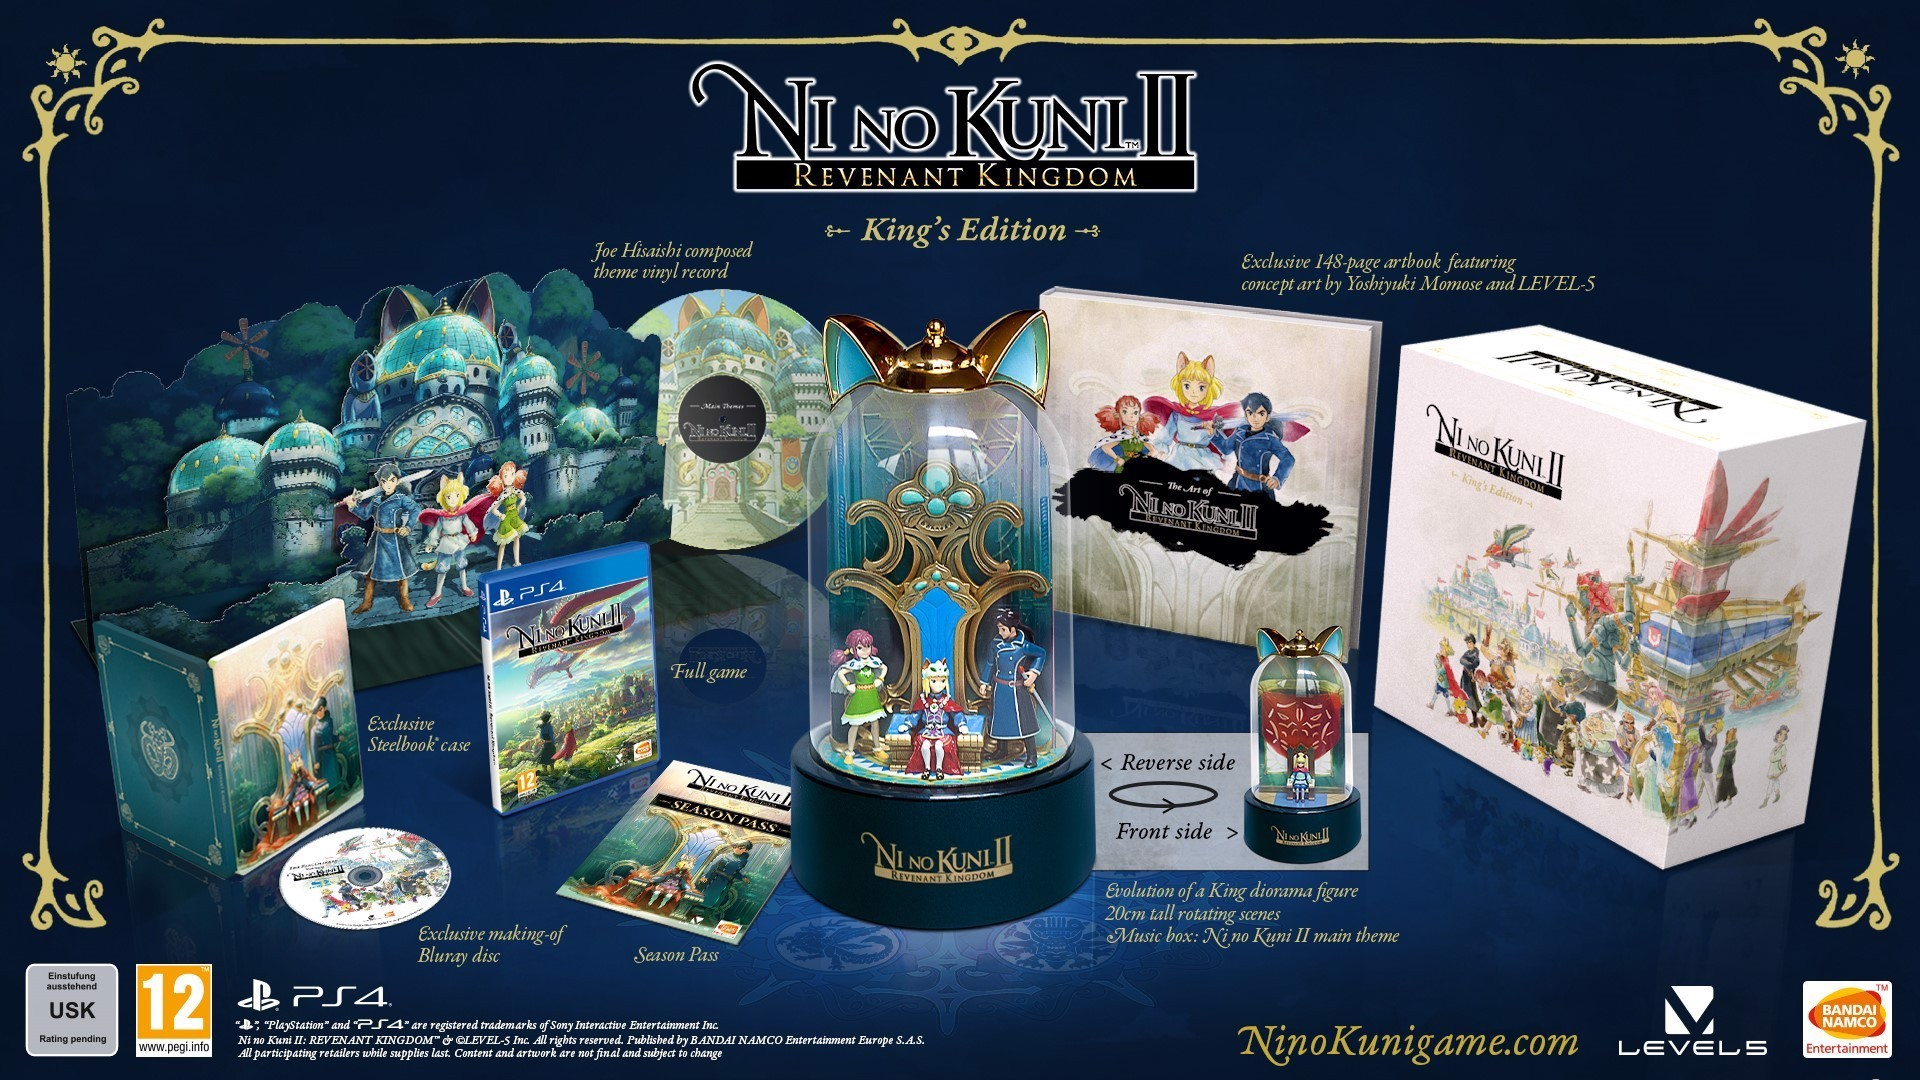 573 - Ni no Kuni II: Revenant Kingdom King Edition